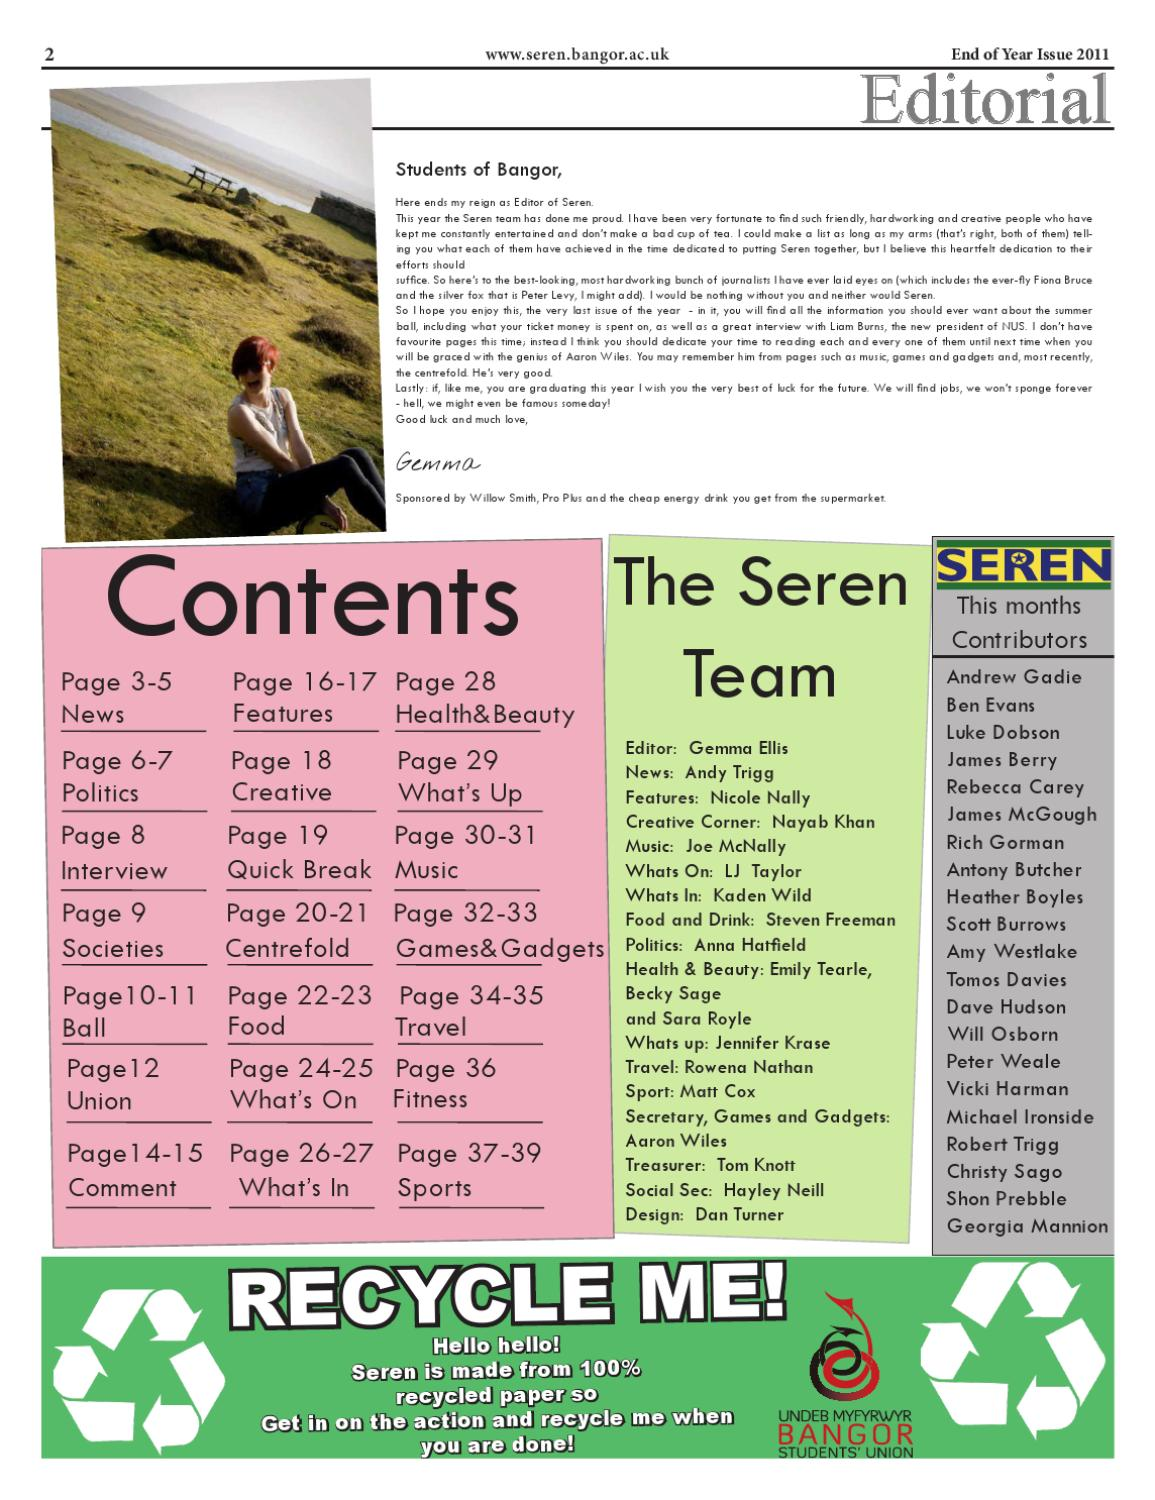 Seren - 218- 2010/11 - End of Year Issue by Seren - issuu